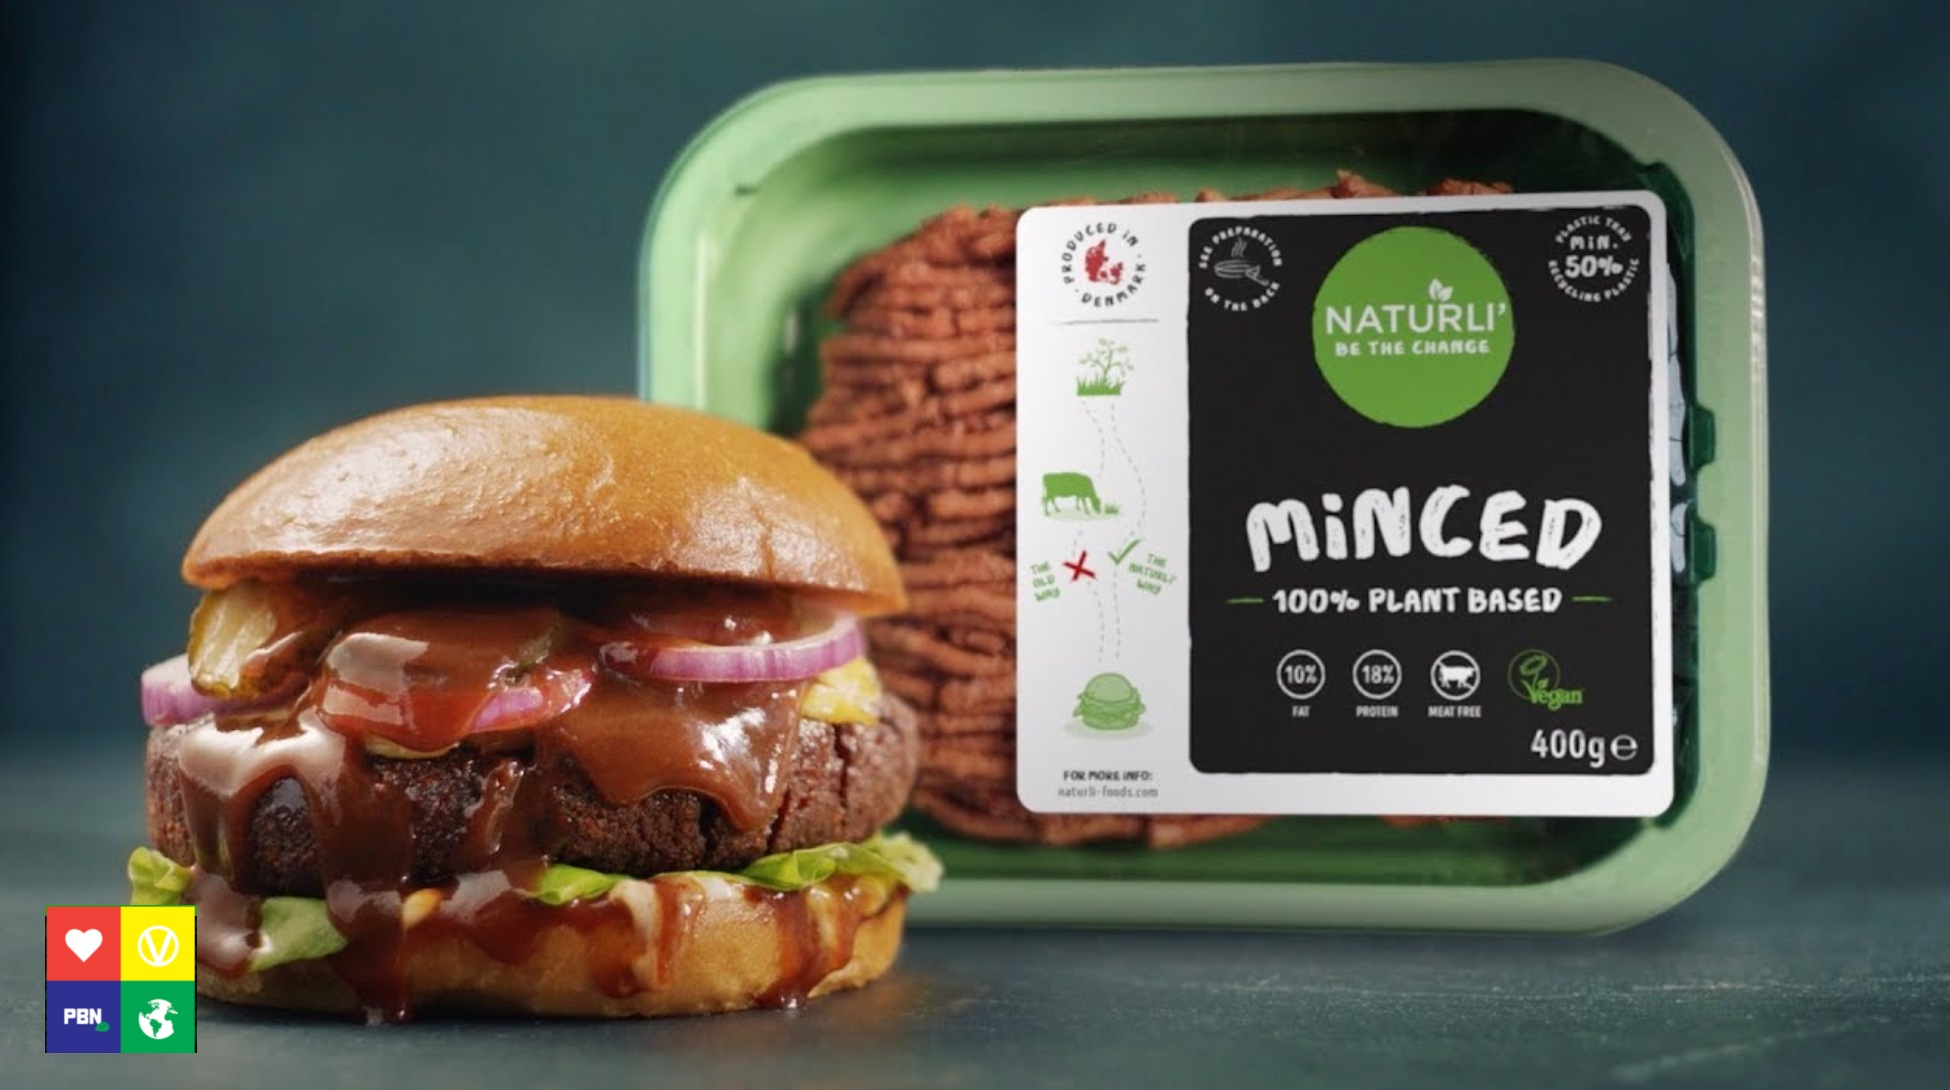 Vegan burger and mince from Naturli' Foods